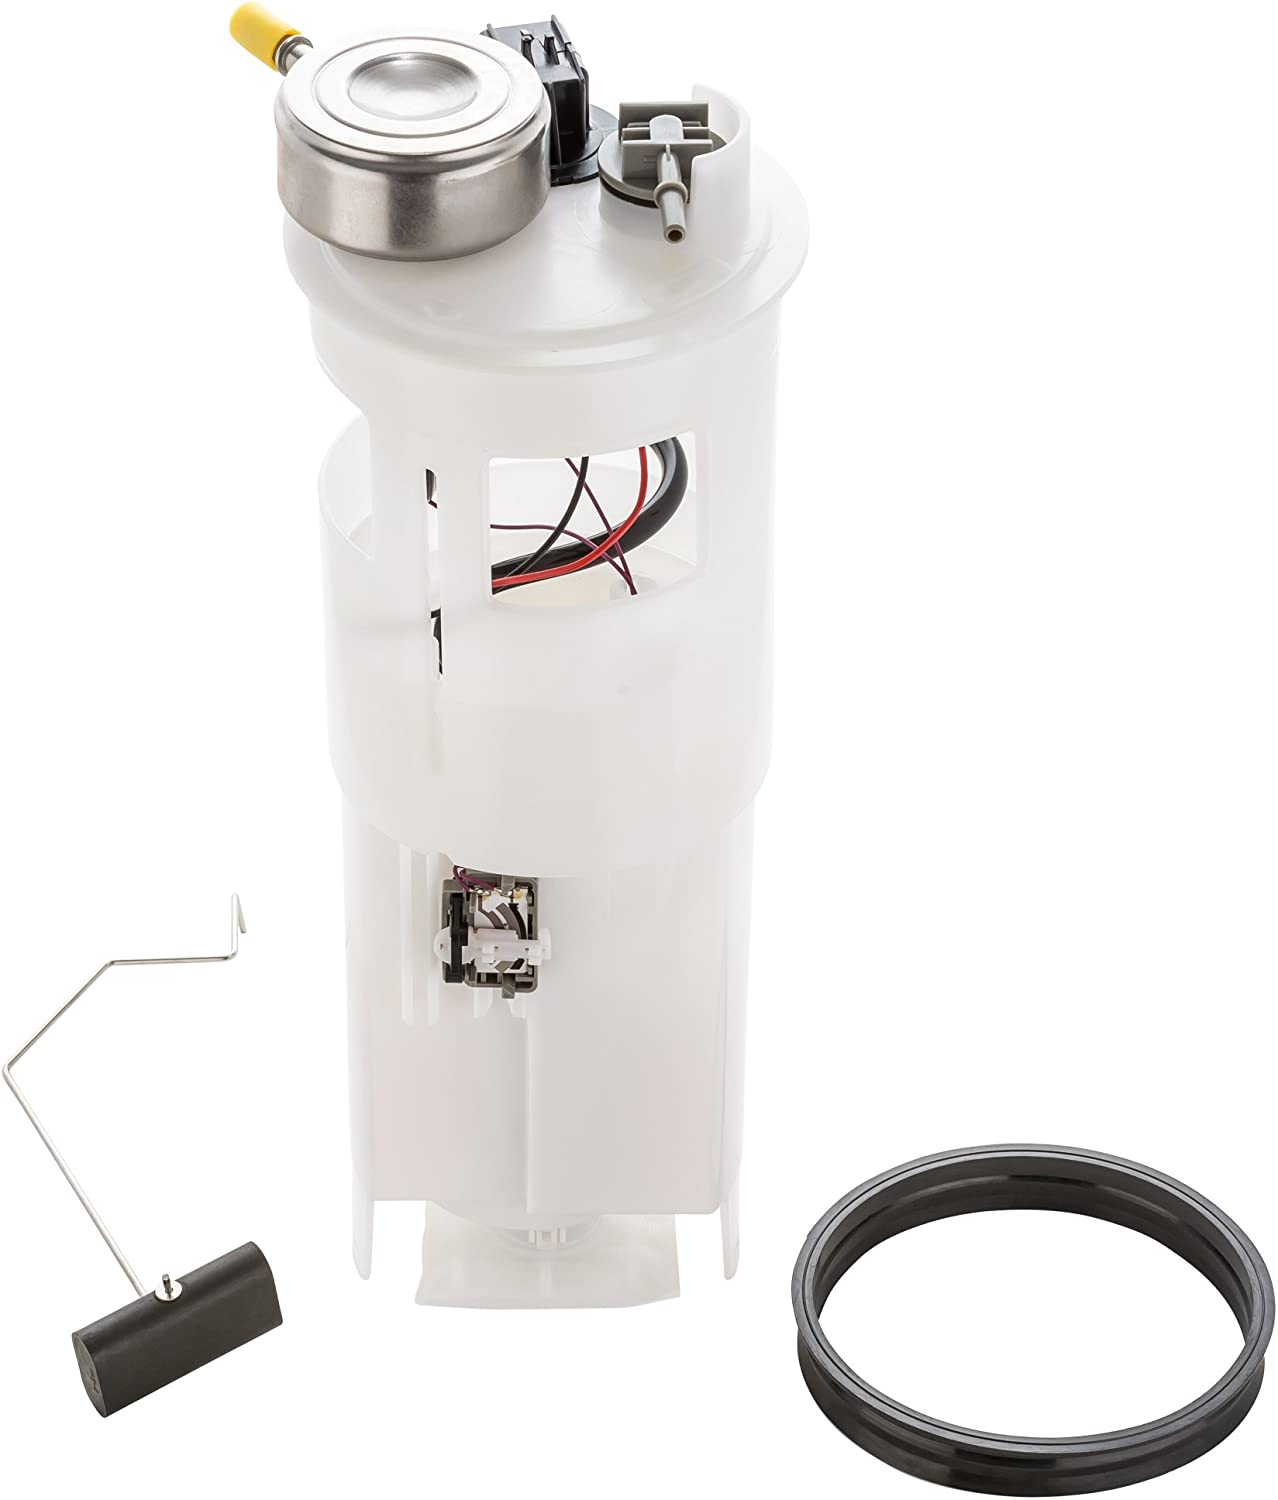 Fuel Pump Assembly for 98-02 Dodge Ram 1500 2500 3500 fits E7138M 4897666AA